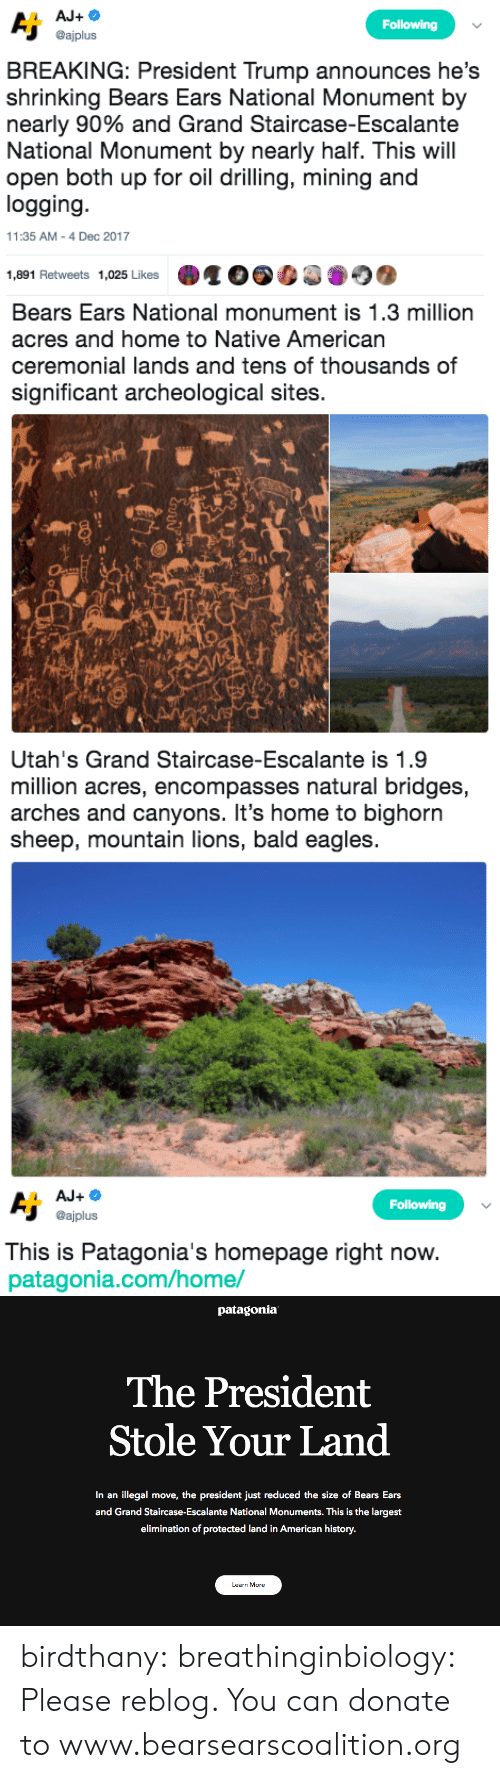 patagonia: Following  @ajplus  BREAKING: President Trump announces he's  shrinking Bears Ears National Monument by  nearly 90% and Grand Staircase-Escalante  National Monument by nearly half. This will  open both up for oil drilling, mining and  logging  11:35 AM-4 Dec 2017  1,891 Retweets 1,025 Likes   Bears Ears National monument is 1.3 million  acres and home to Native American  ceremonial lands and tens of thousands of  significant archeological sites.  sh   Utah's Grand Staircase-Escalante is 1.9  million acres, encompasses natural bridges,  arches and canyons. It's home to bighorn  sheep, mountain lions, bald eagles   Following  @ajplus  This is Patagonia's homepage right now  patagonia.com/home/   patagonia  The President  Stole Your Land  In an illegal move, the president just reduced the size of Bears Ears  and Grand Staircase-Escalante National Monuments. This is the largest  elimination of protected land in American history.  Learn More birdthany: breathinginbiology: Please reblog.  You can donate to www.bearsearscoalition.org